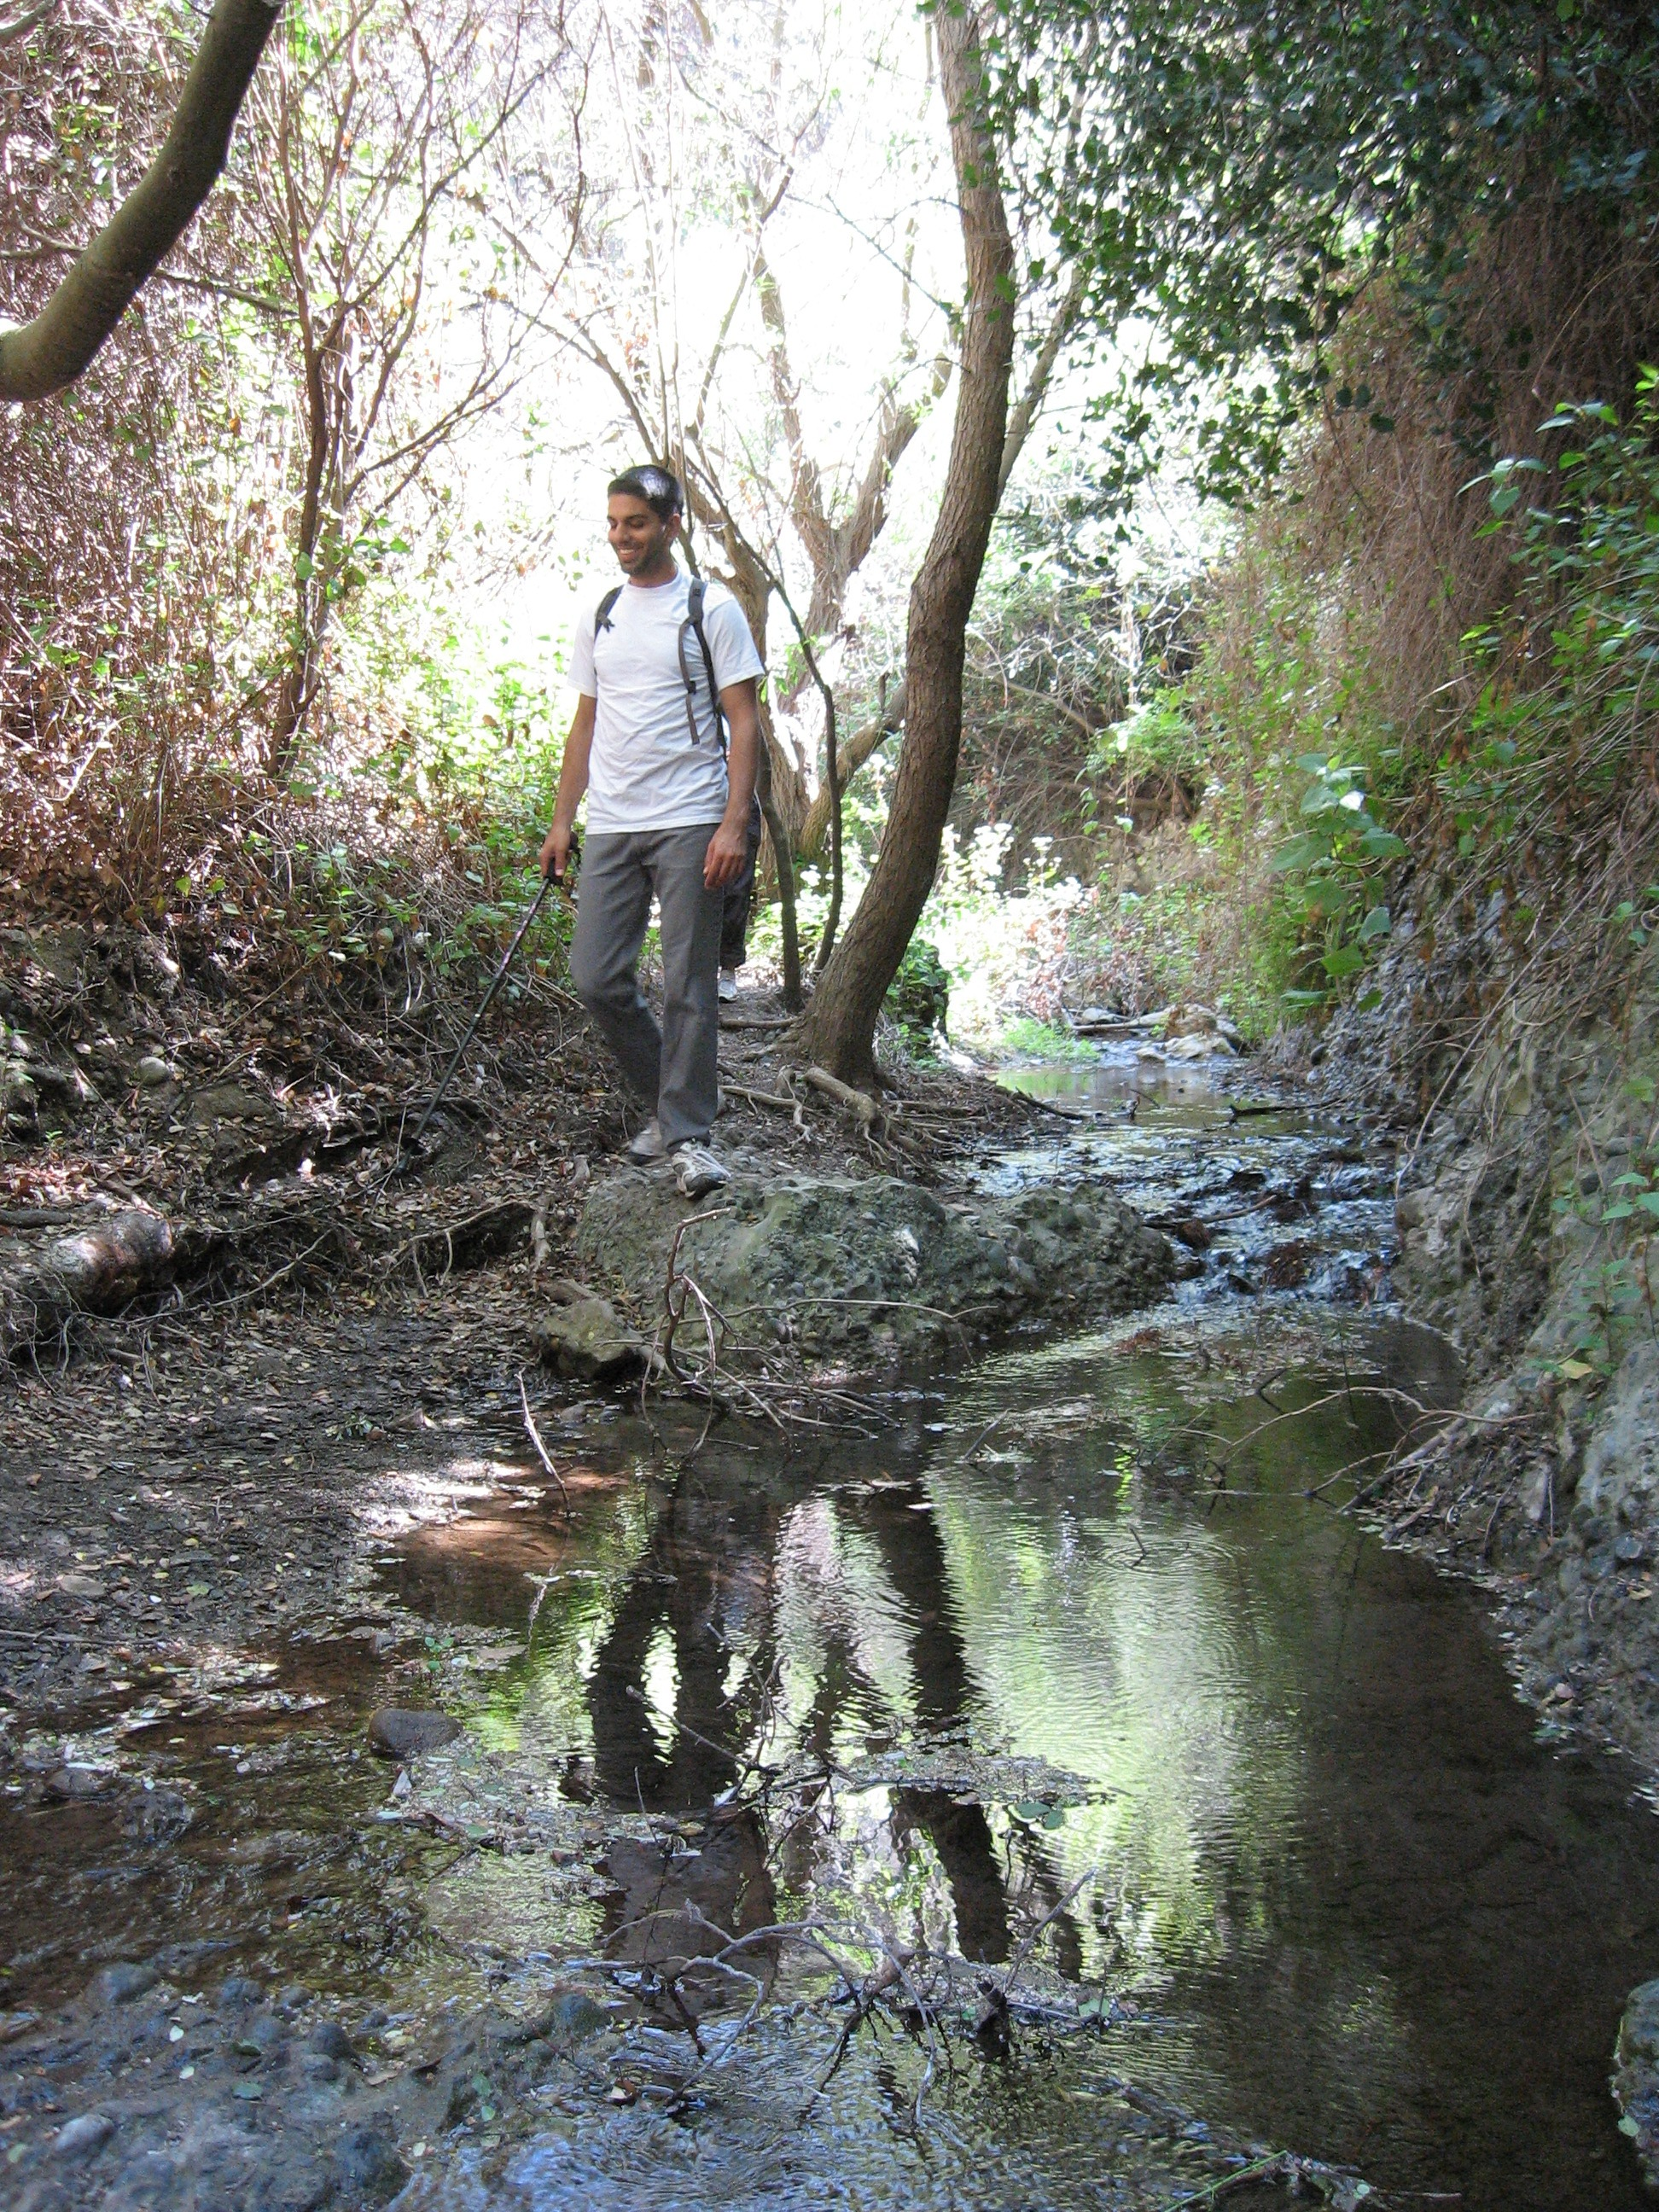 We Then Hiked Downhill Descending All The Way Down To A Creek Bed That Remainder Of Our Hike Would Follow Closely